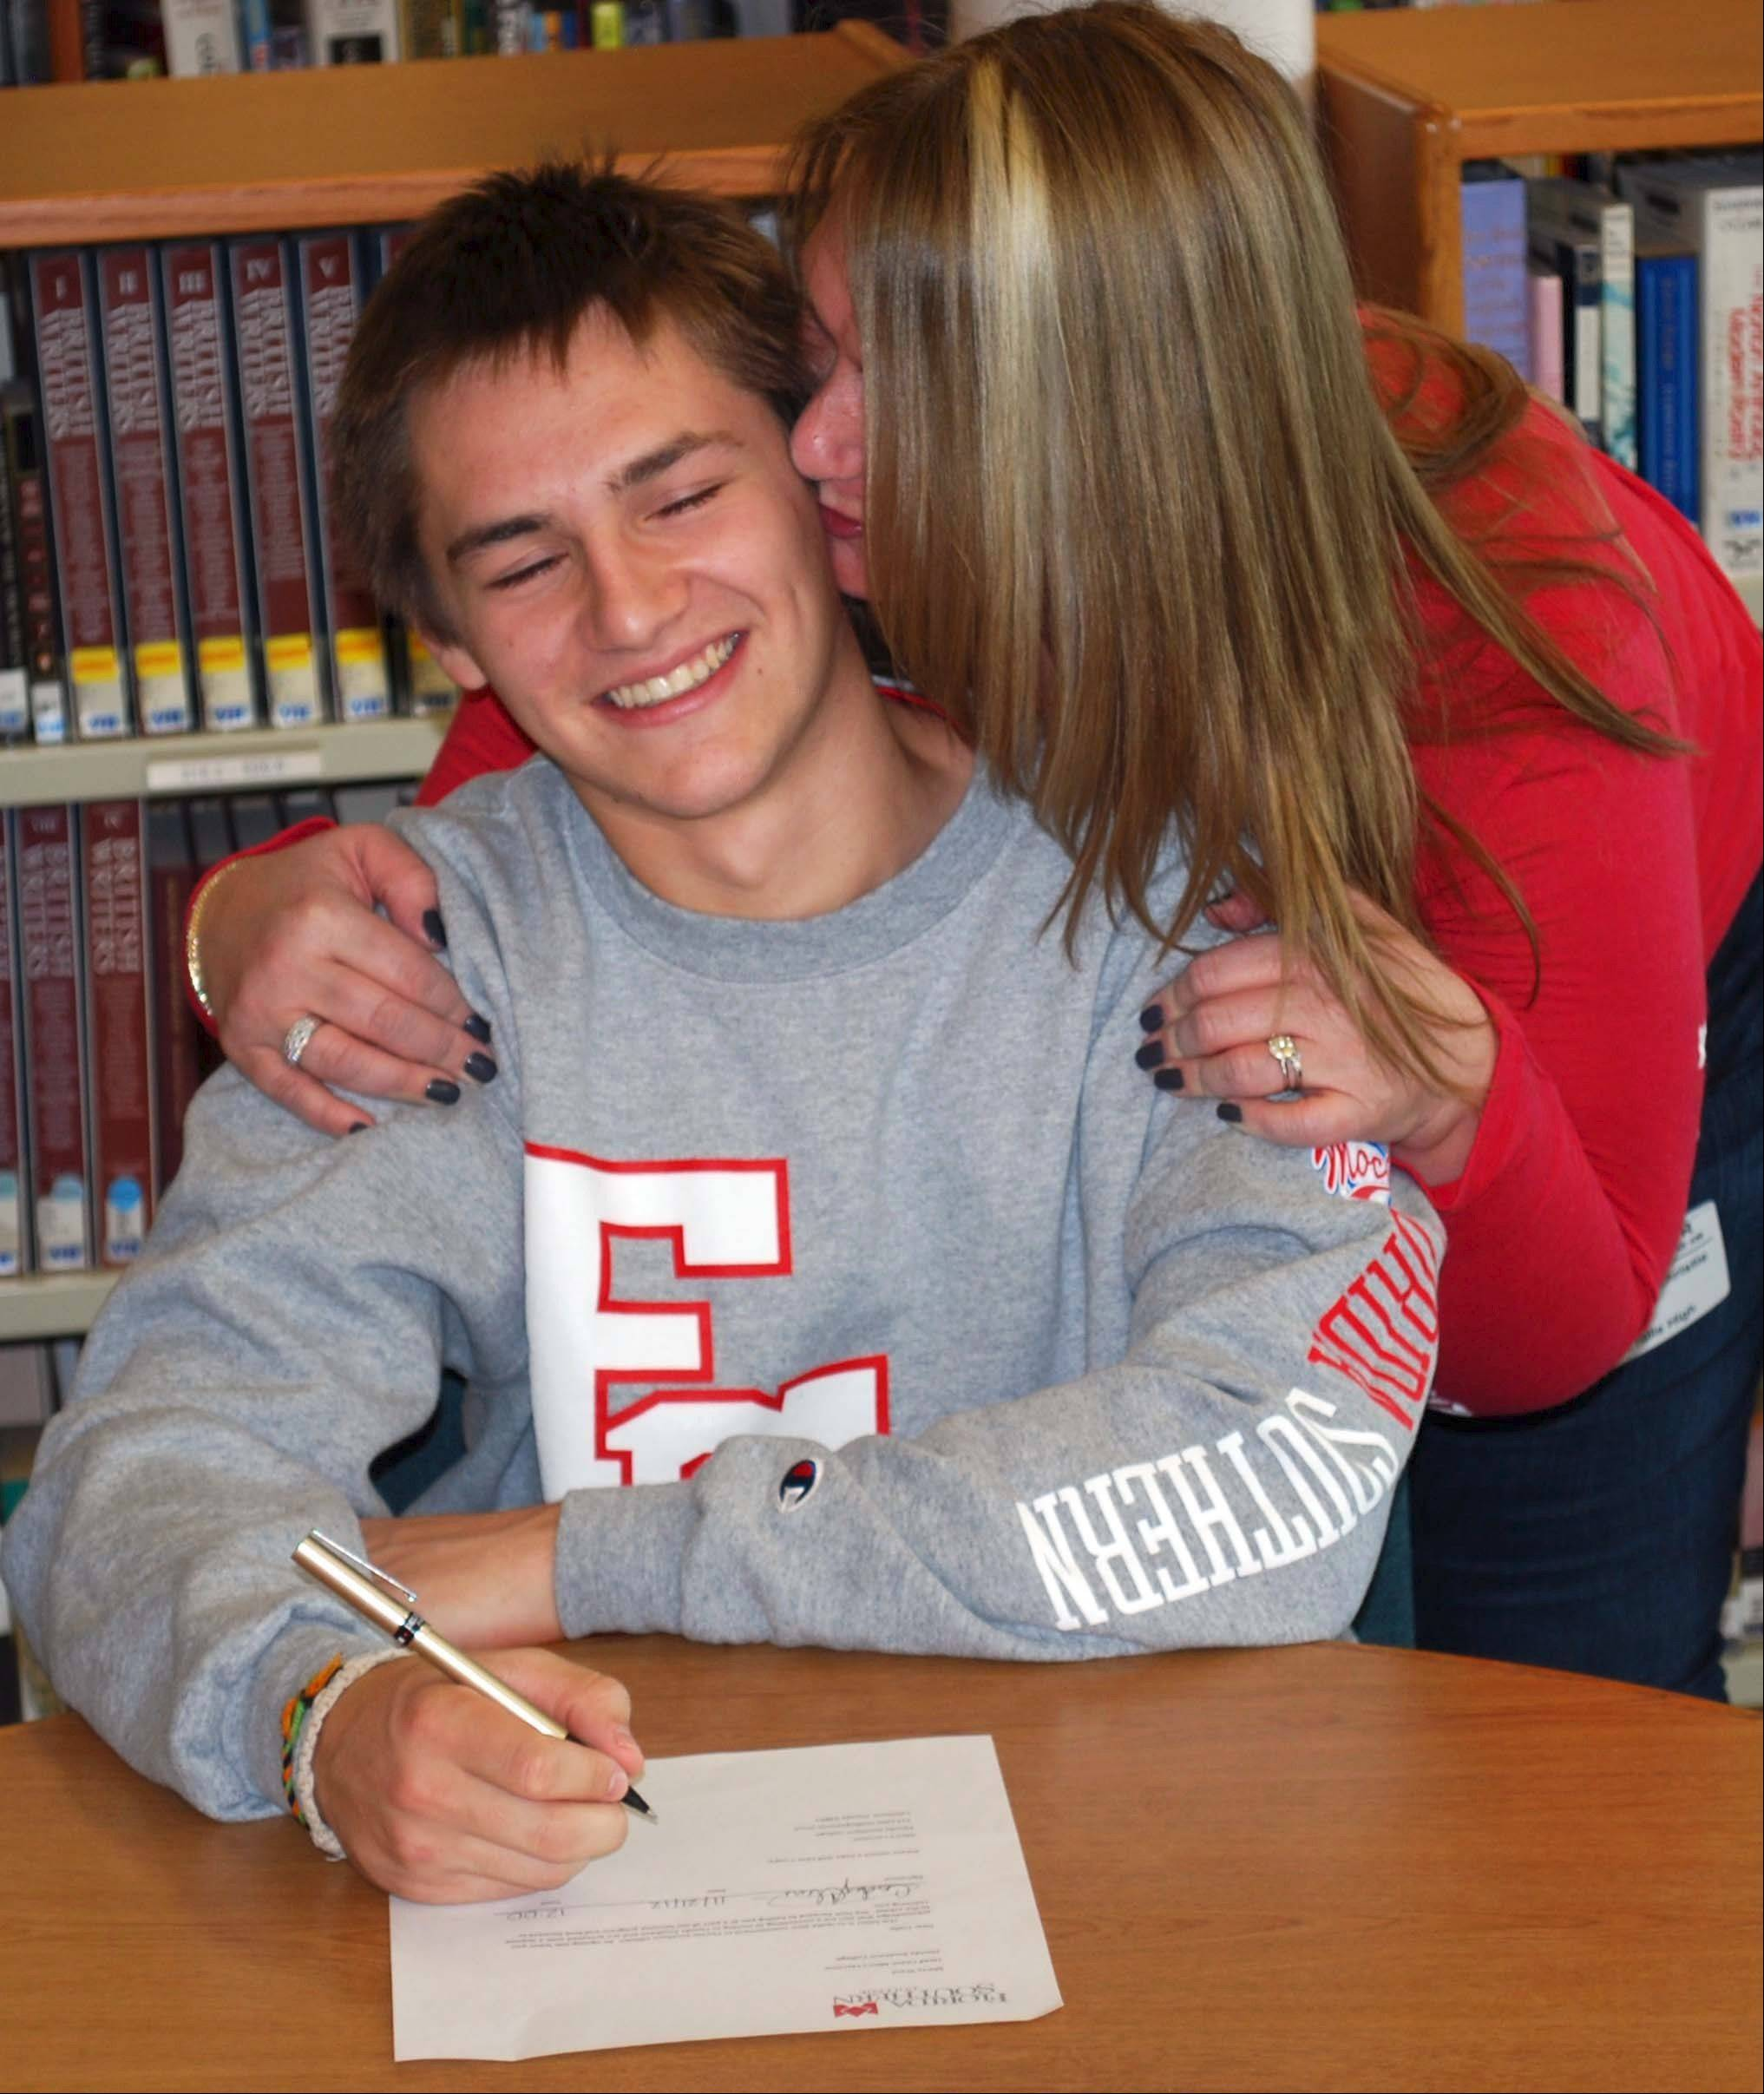 Vernon Hills senior goalie Cody Christie is kissed by his mother, Annie Christie-Patrick, after signing his letter of intent to play lacrosse for Florida Southern College. Christie is the first Division II lacrosse player to come out of Vernon Hills.